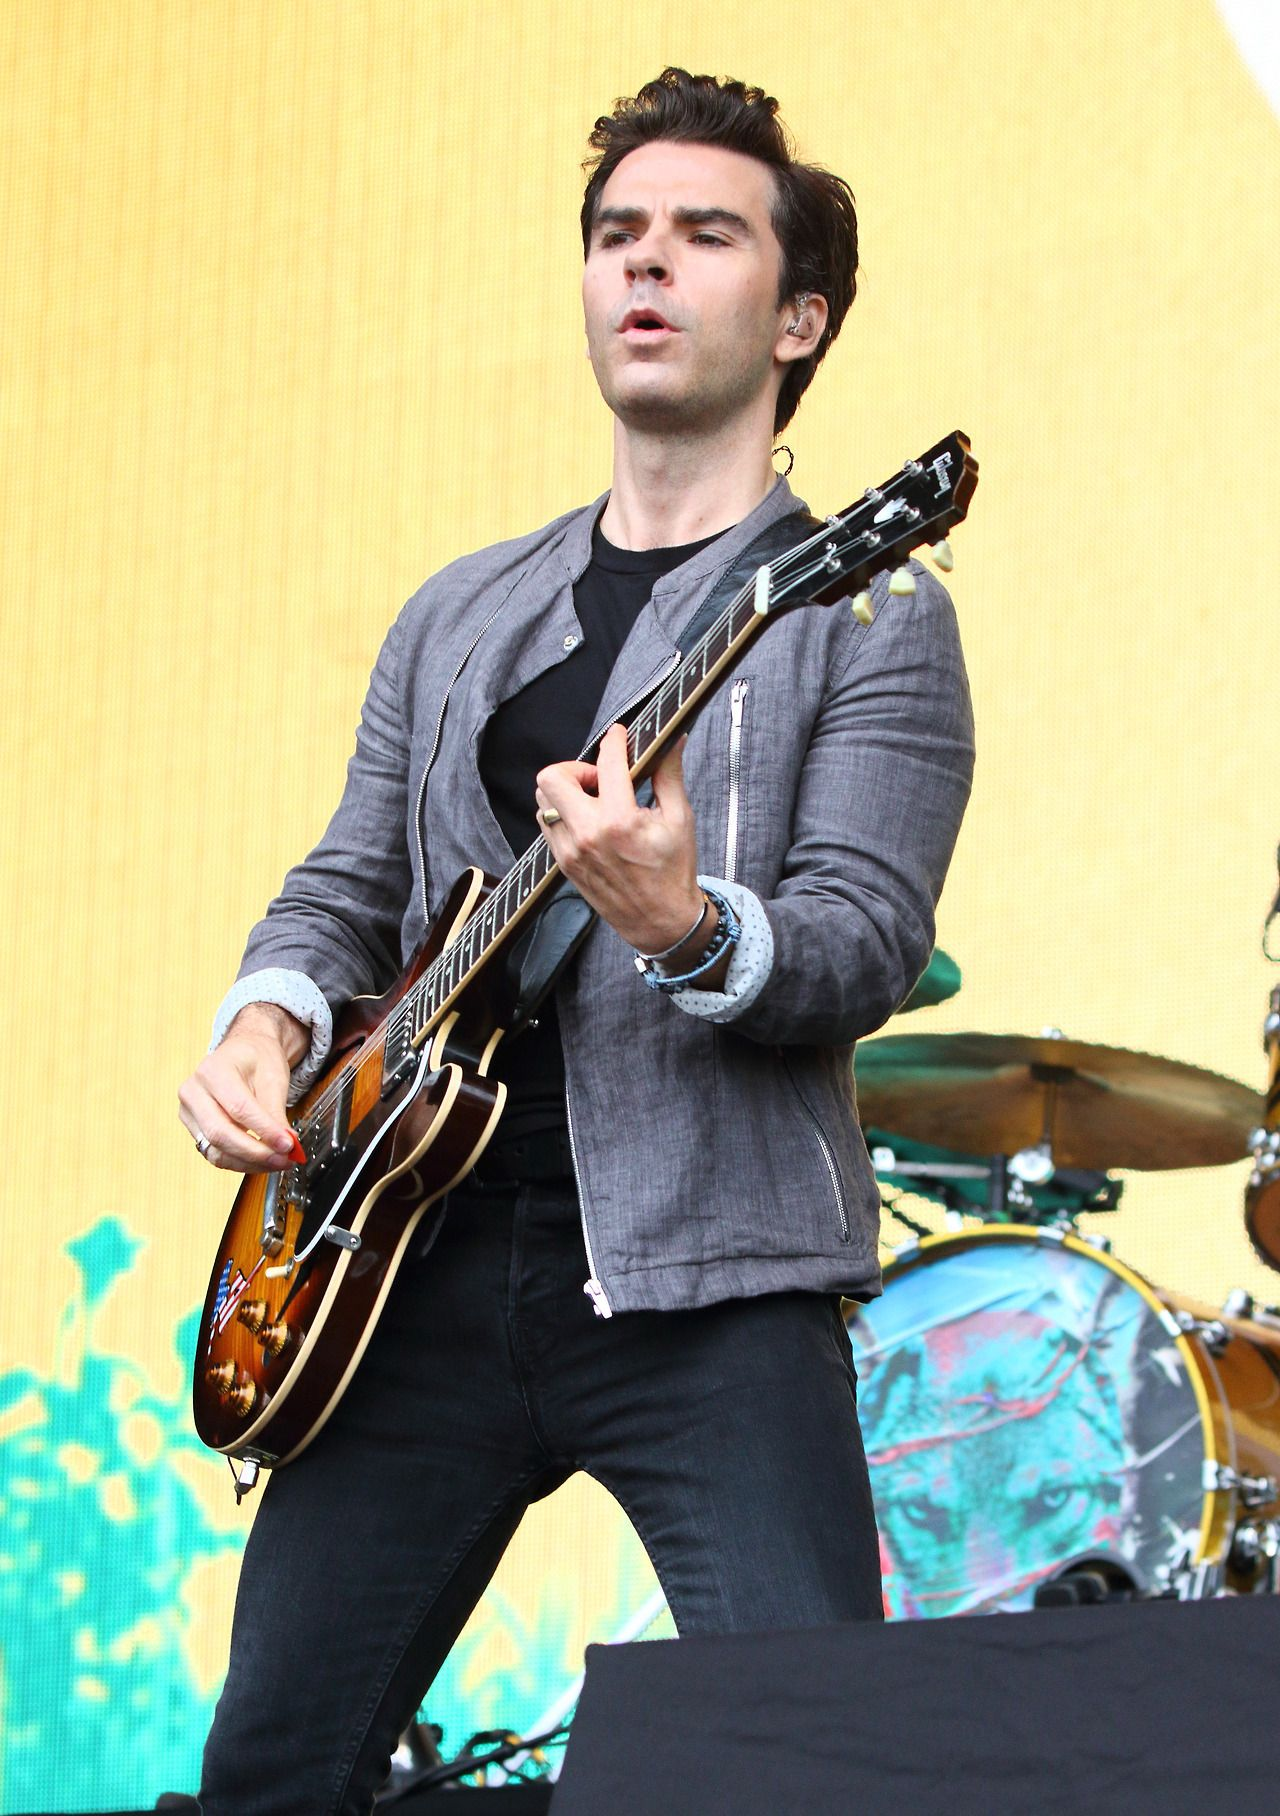 Stereophonics performs at BBC Radio 2 Live in Hyde Park